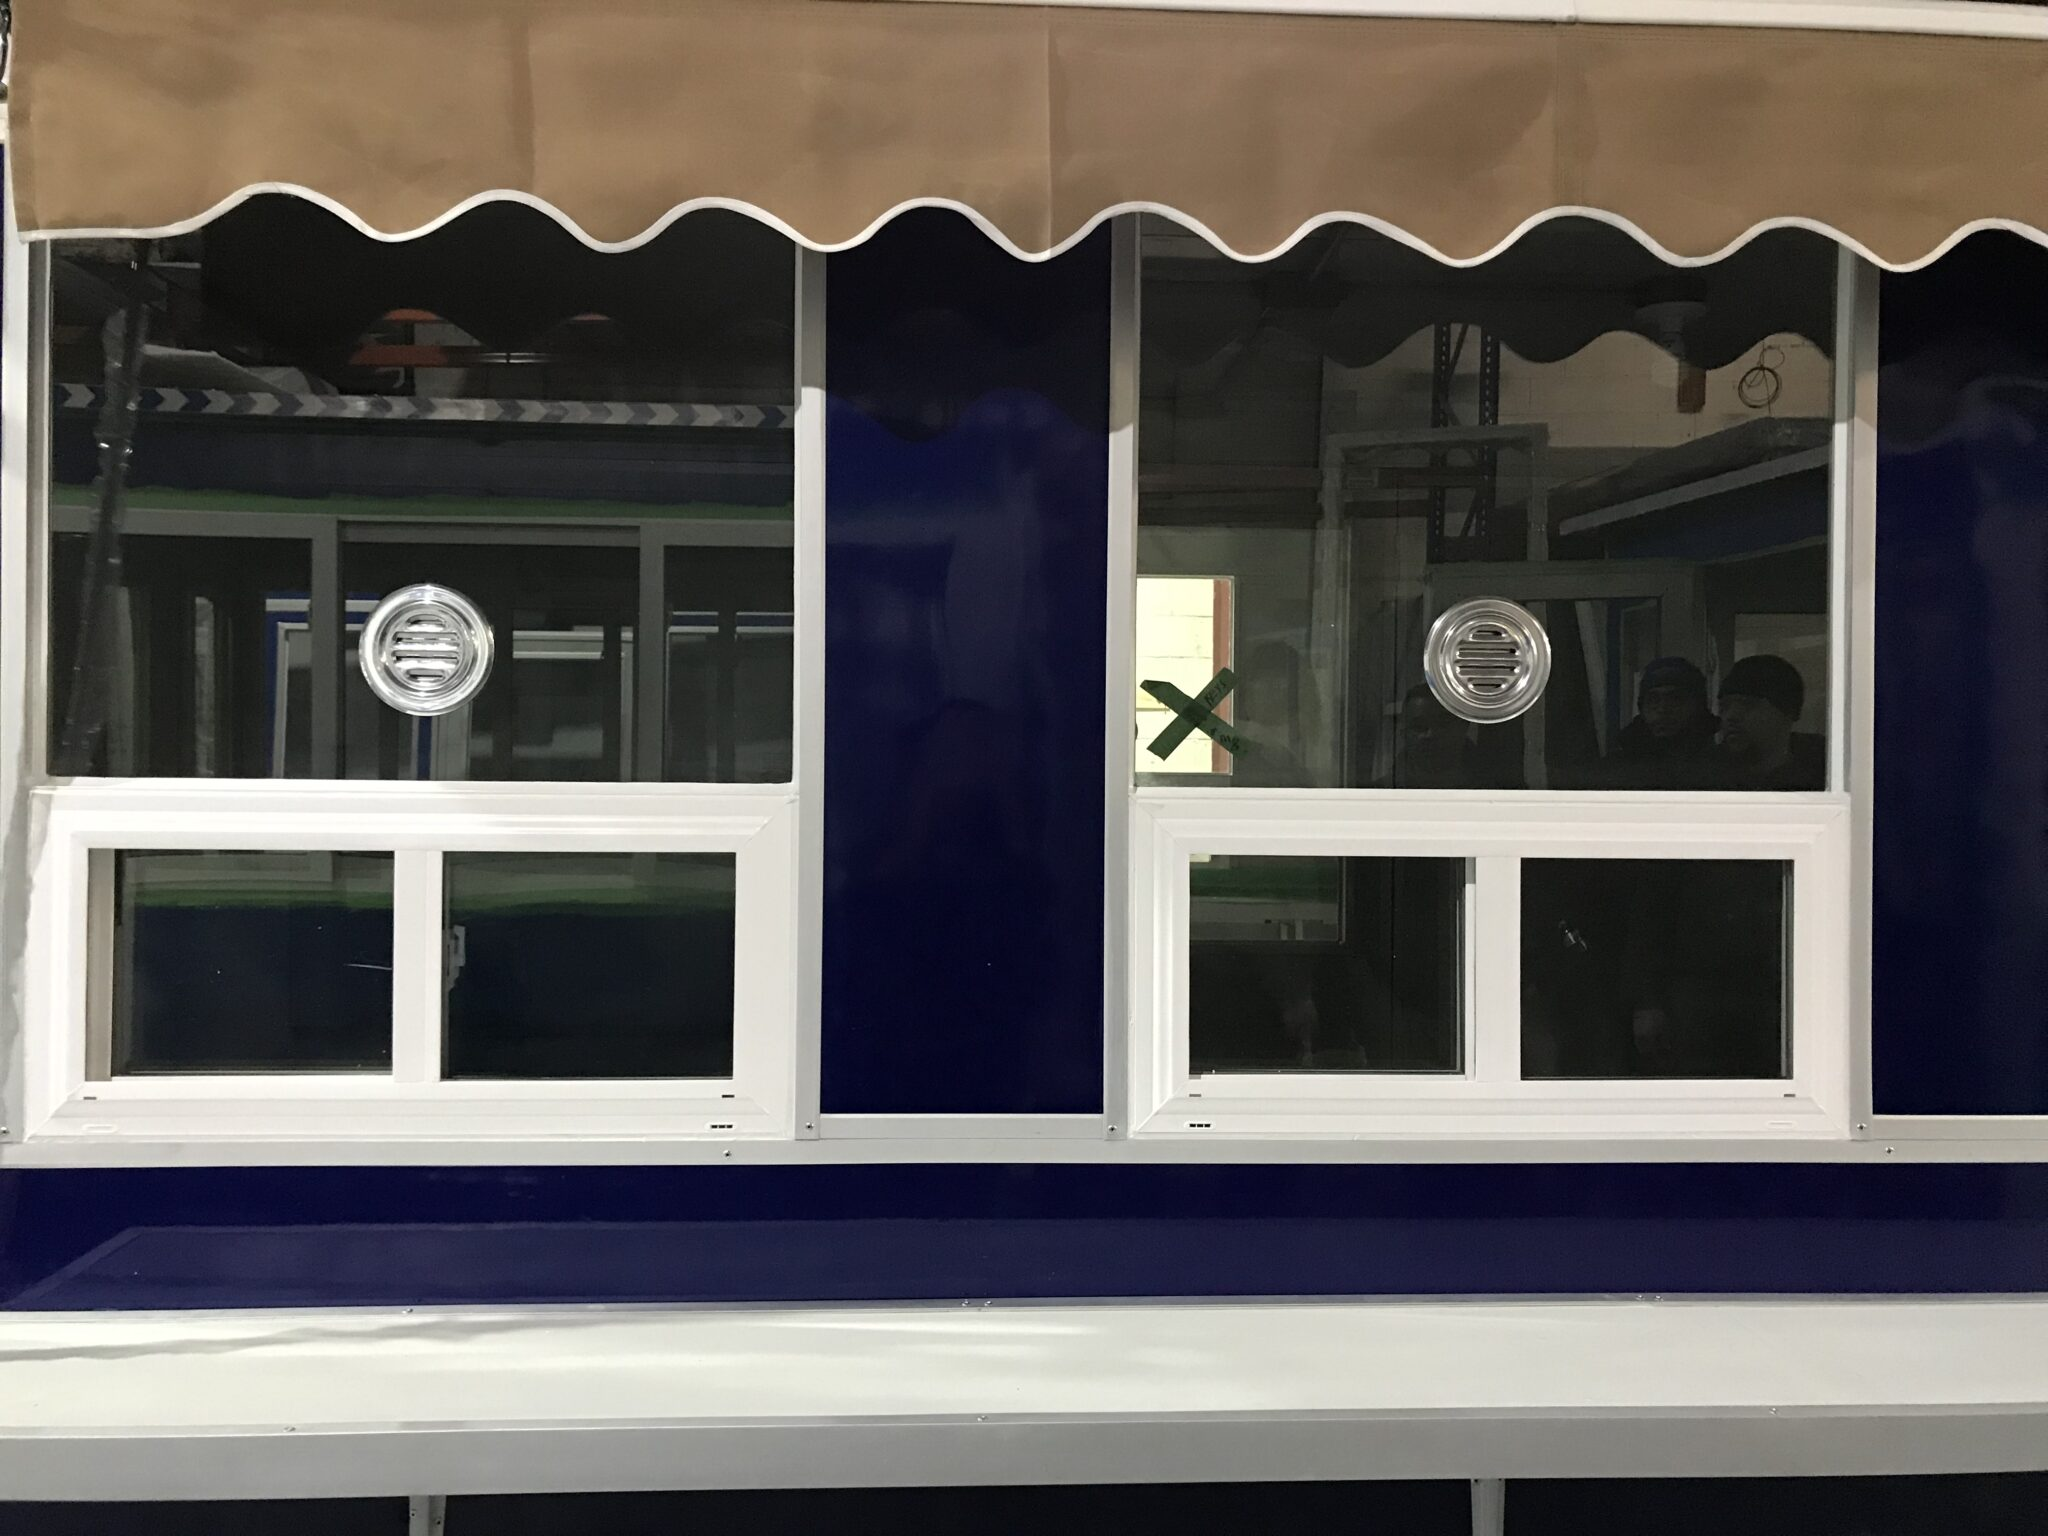 6x16 Ticket Booth in Tampa, Fl with Ticket Transaction Windows, Speakers, Sliding Windows, Exterior Counter, and Retractable Awning